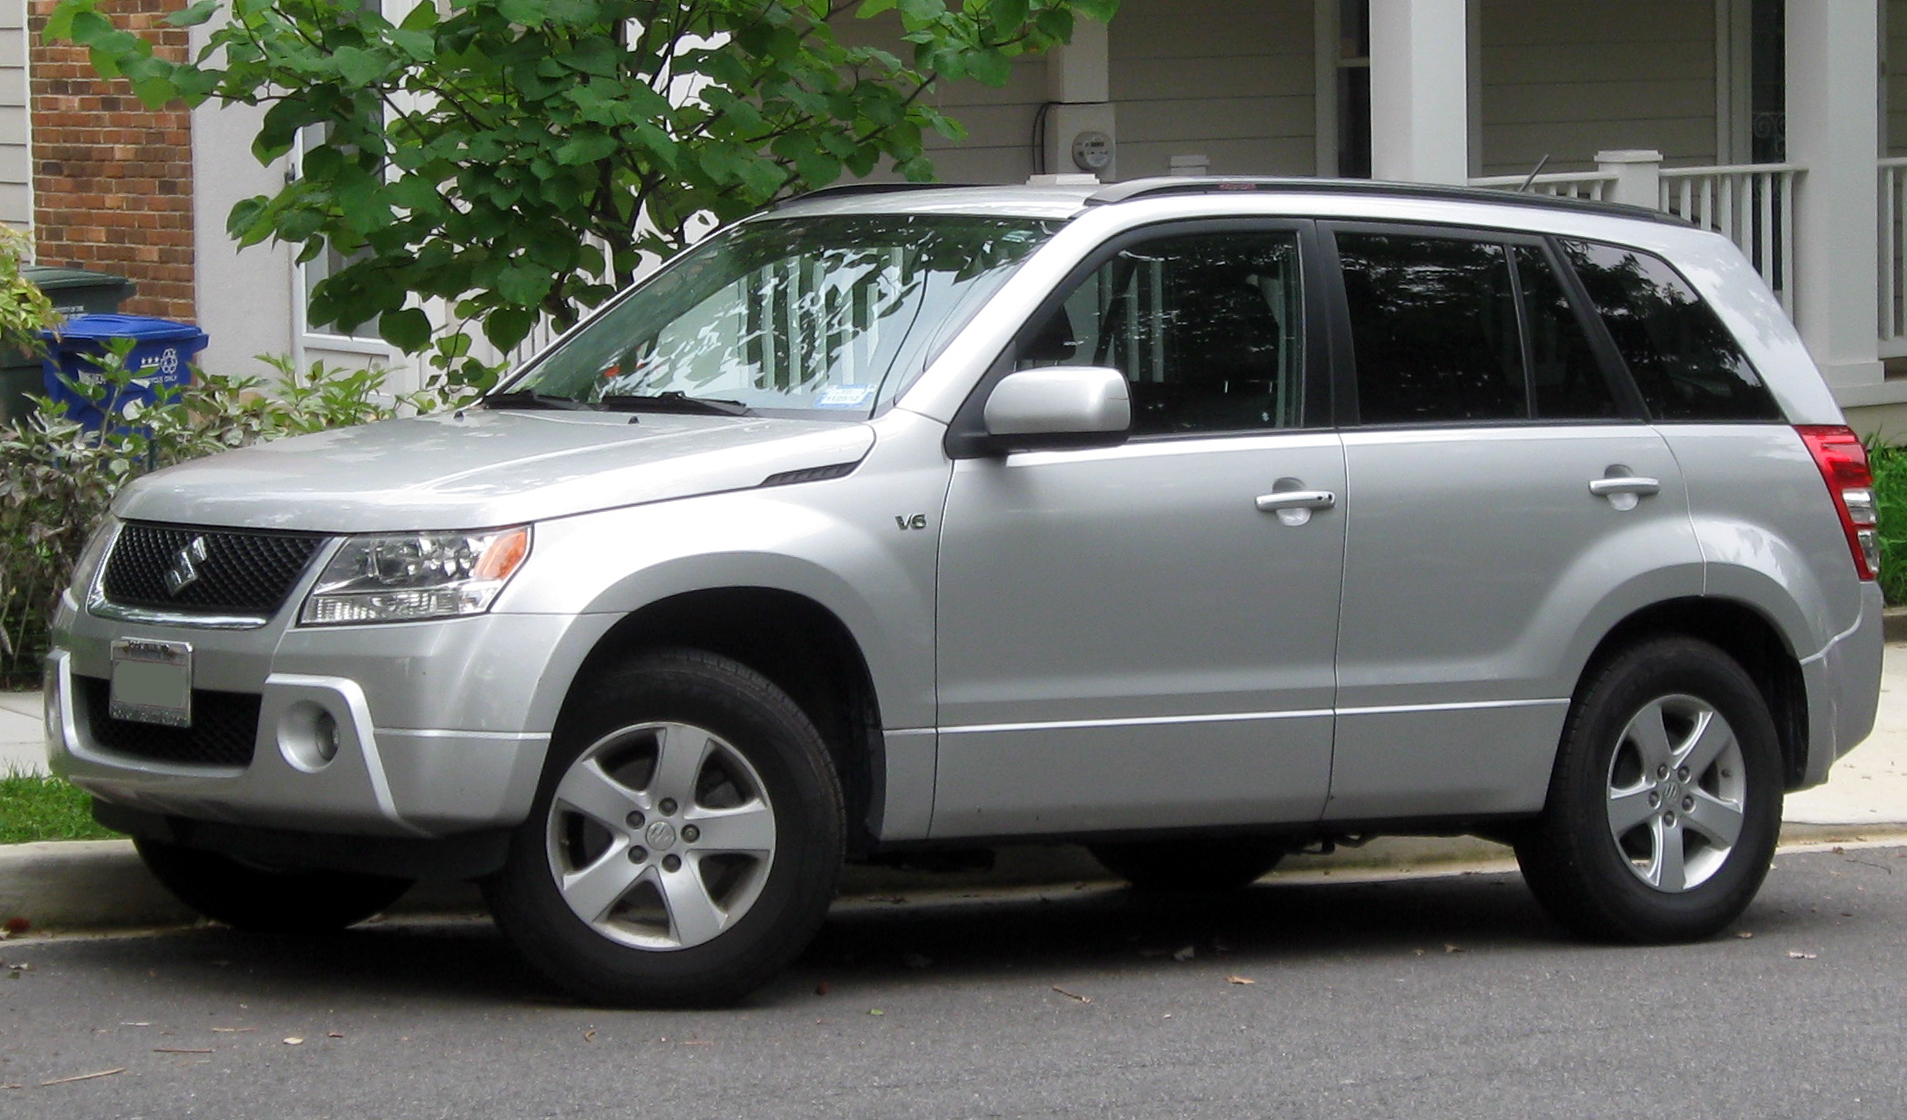 2011 suzuki grand vitara information and photos zombiedrive rh zombdrive com Suzuki Samurai suzuki grand vitara 2011 repair manual